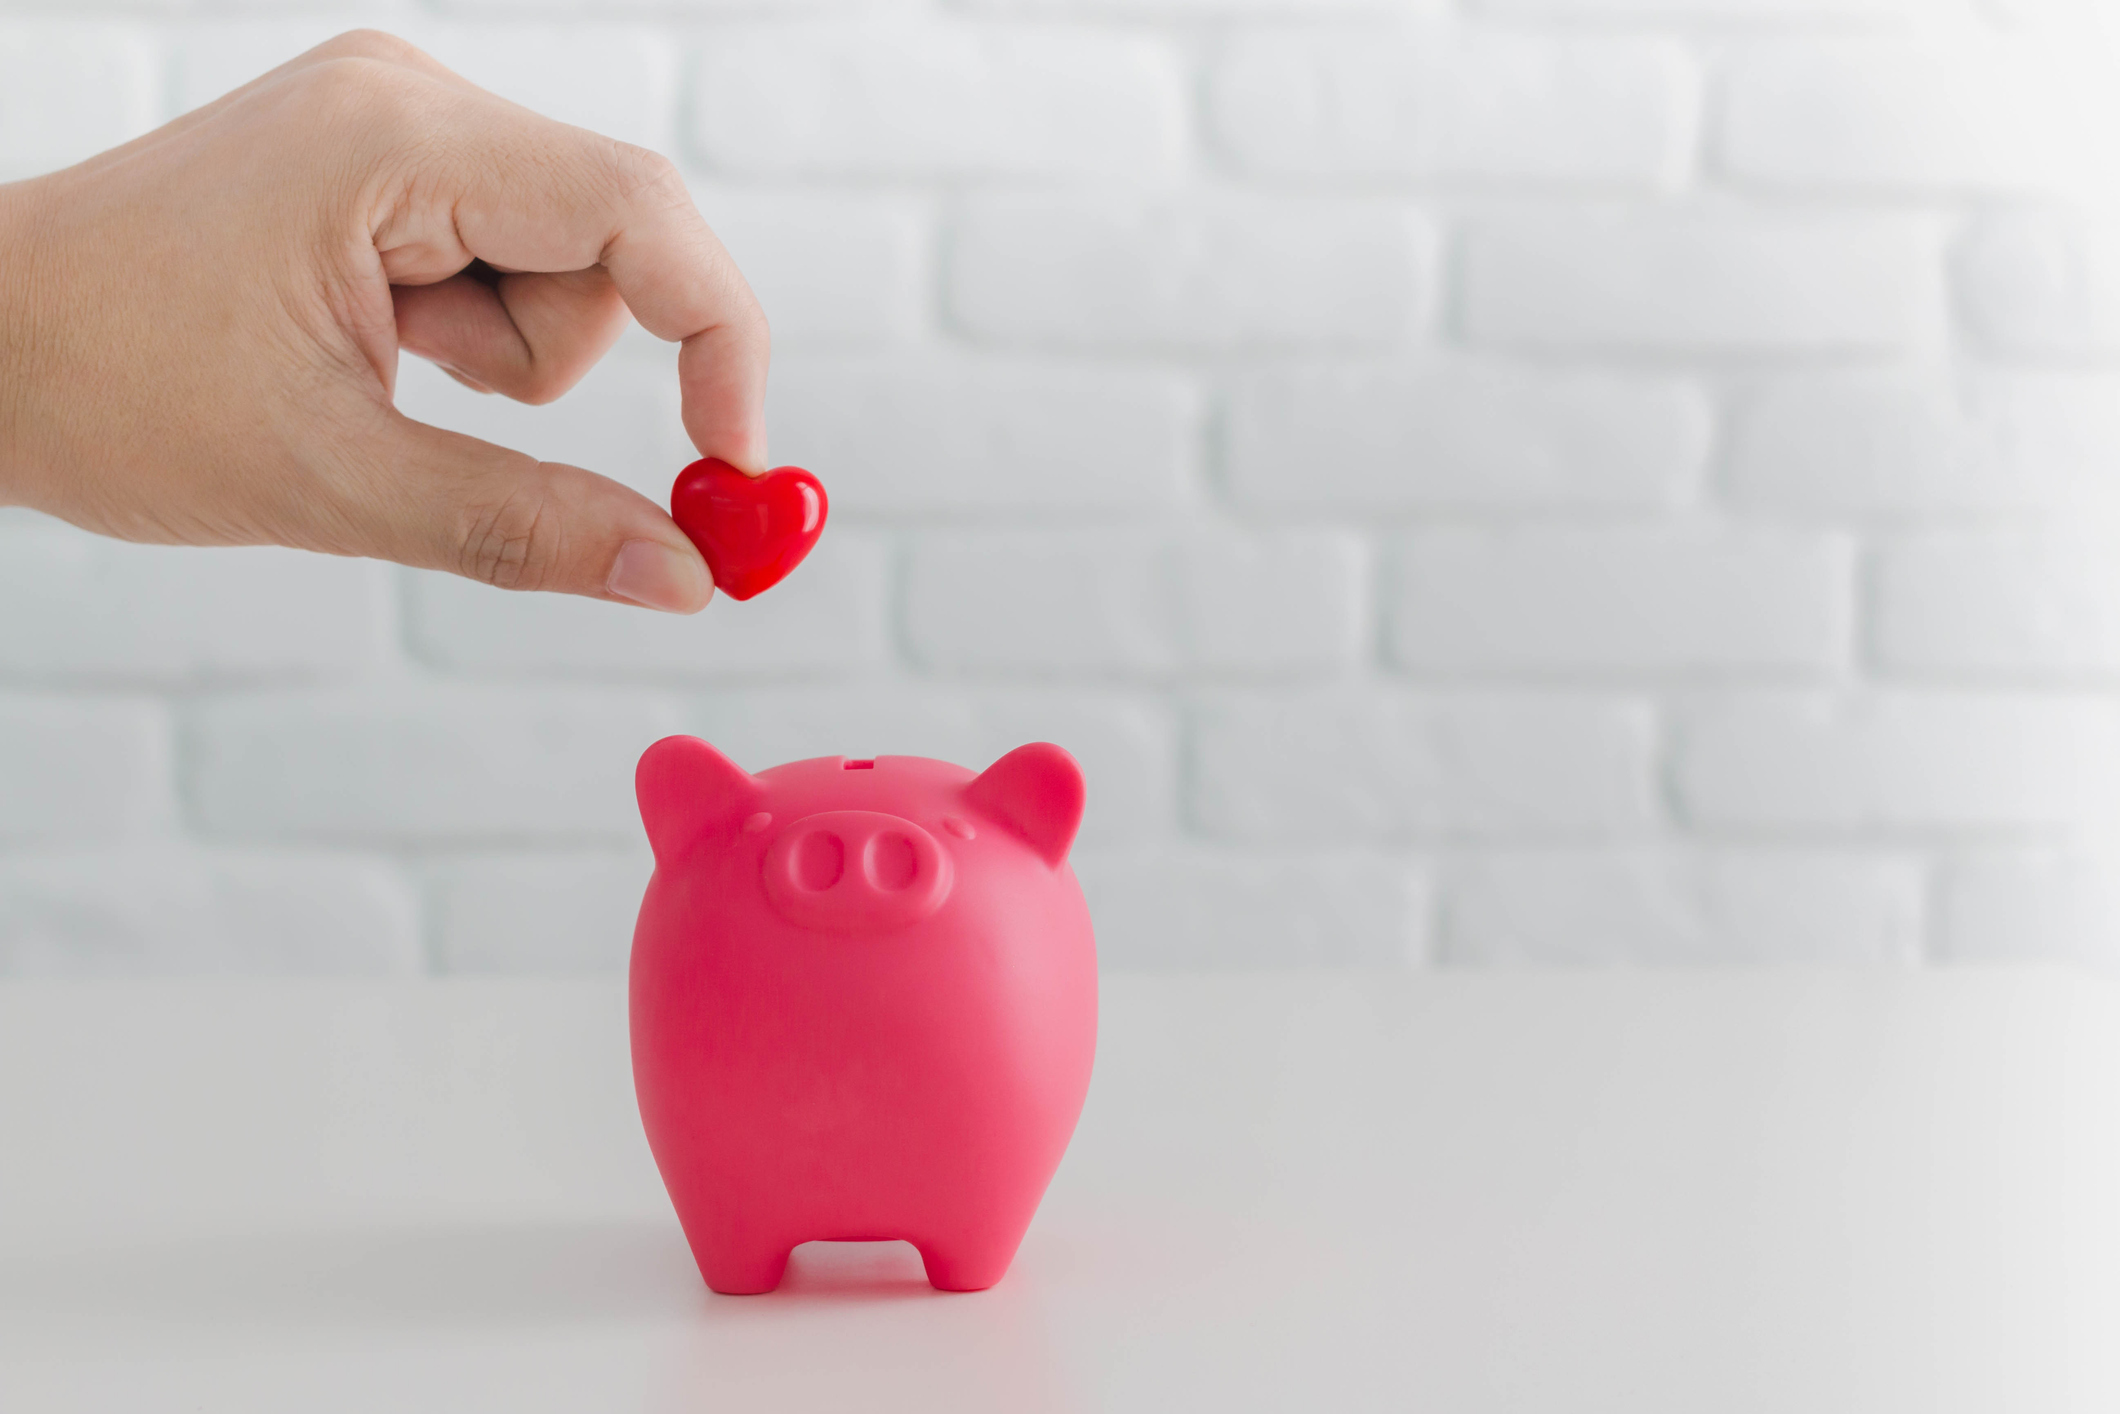 Man's-hand-putting-red-heart-in-to-piggy-bank-metaphor-saving-love-for-lover-or-family-in-every-day.Concept-of-happy-relationship.-911910830_2124x1416.jpeg